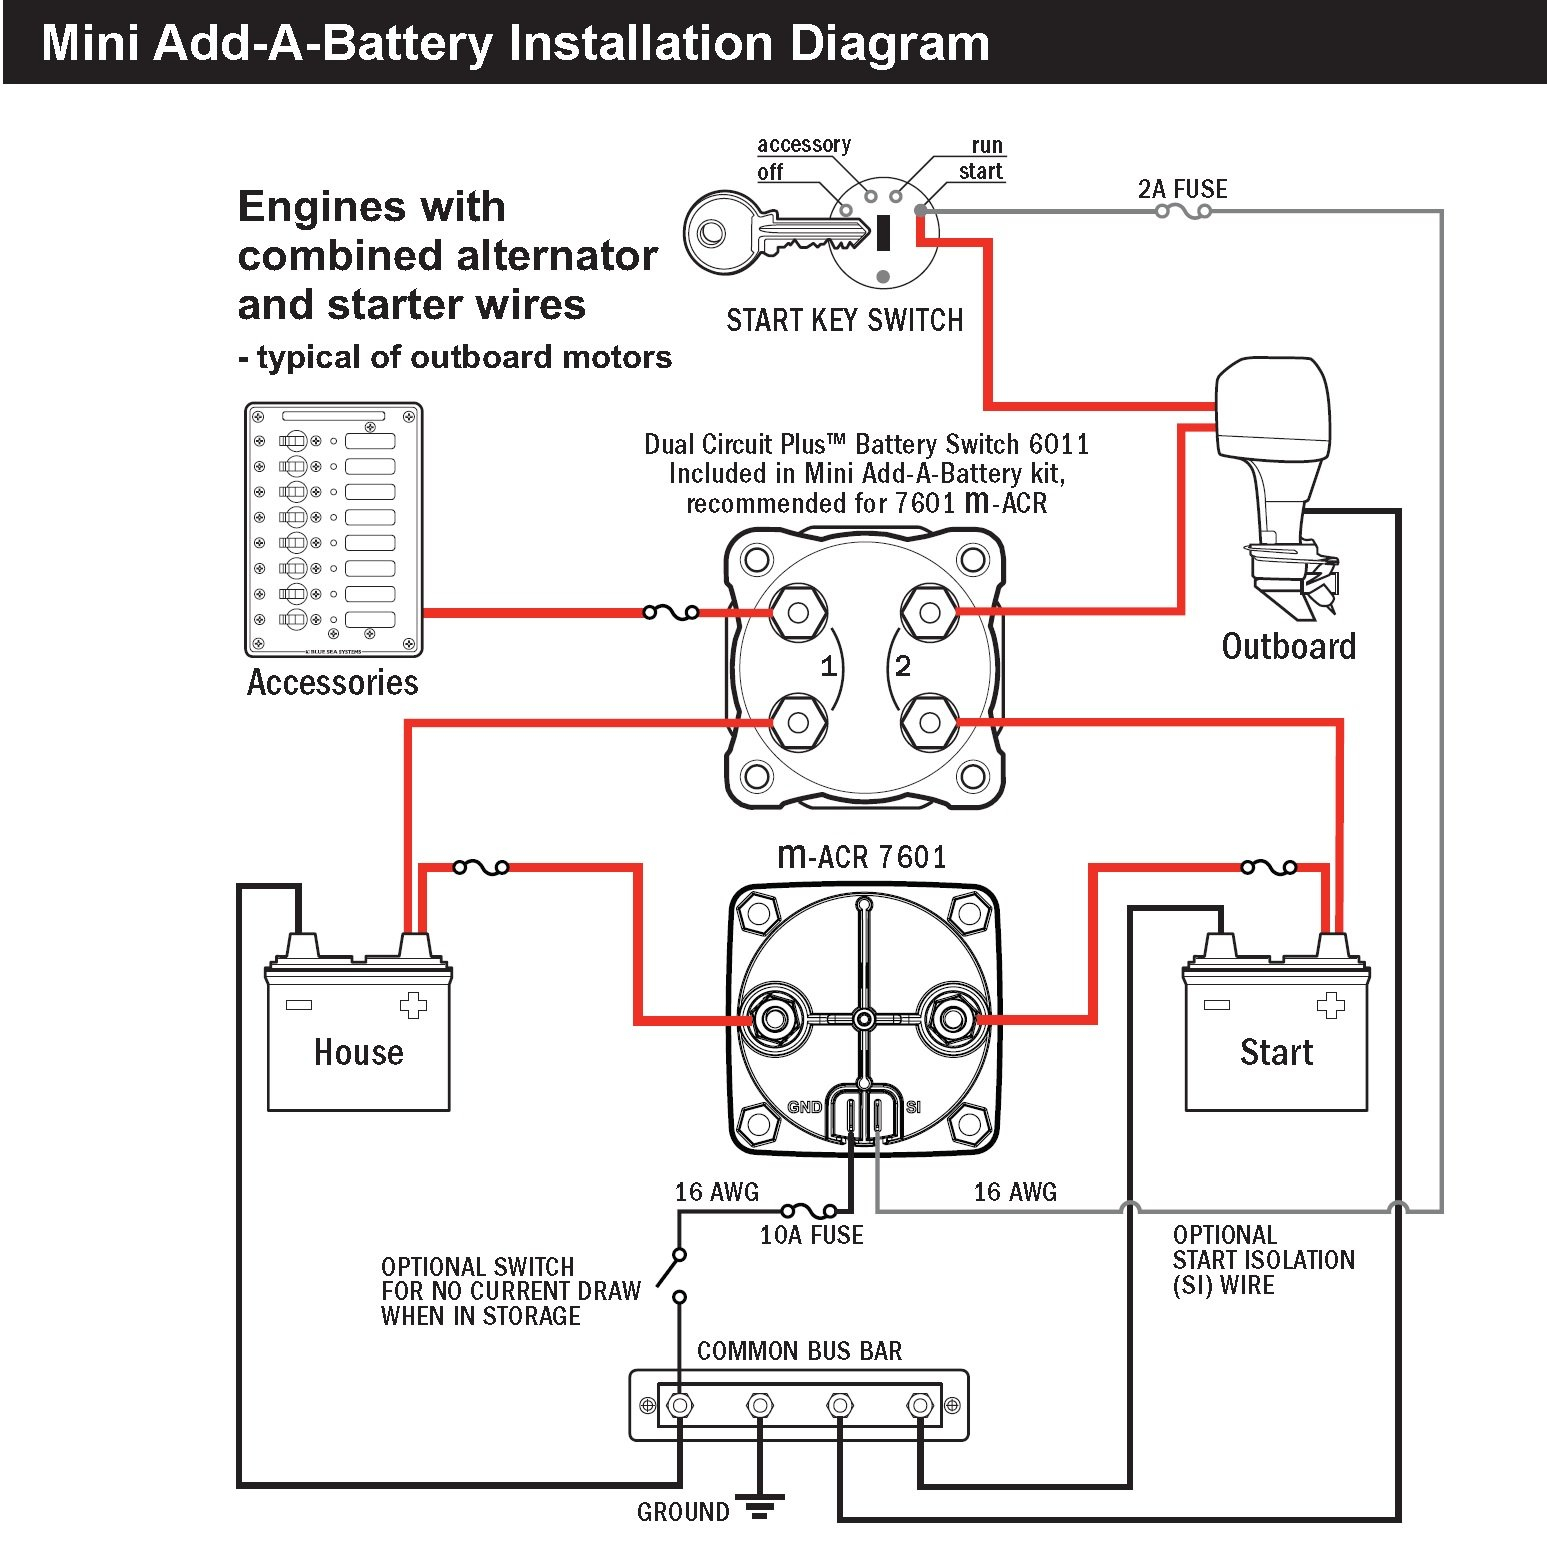 Sure Power Battery isolator Wiring Diagram - Sure Power Battery isolator Wiring Diagram Awesome Blue Sea